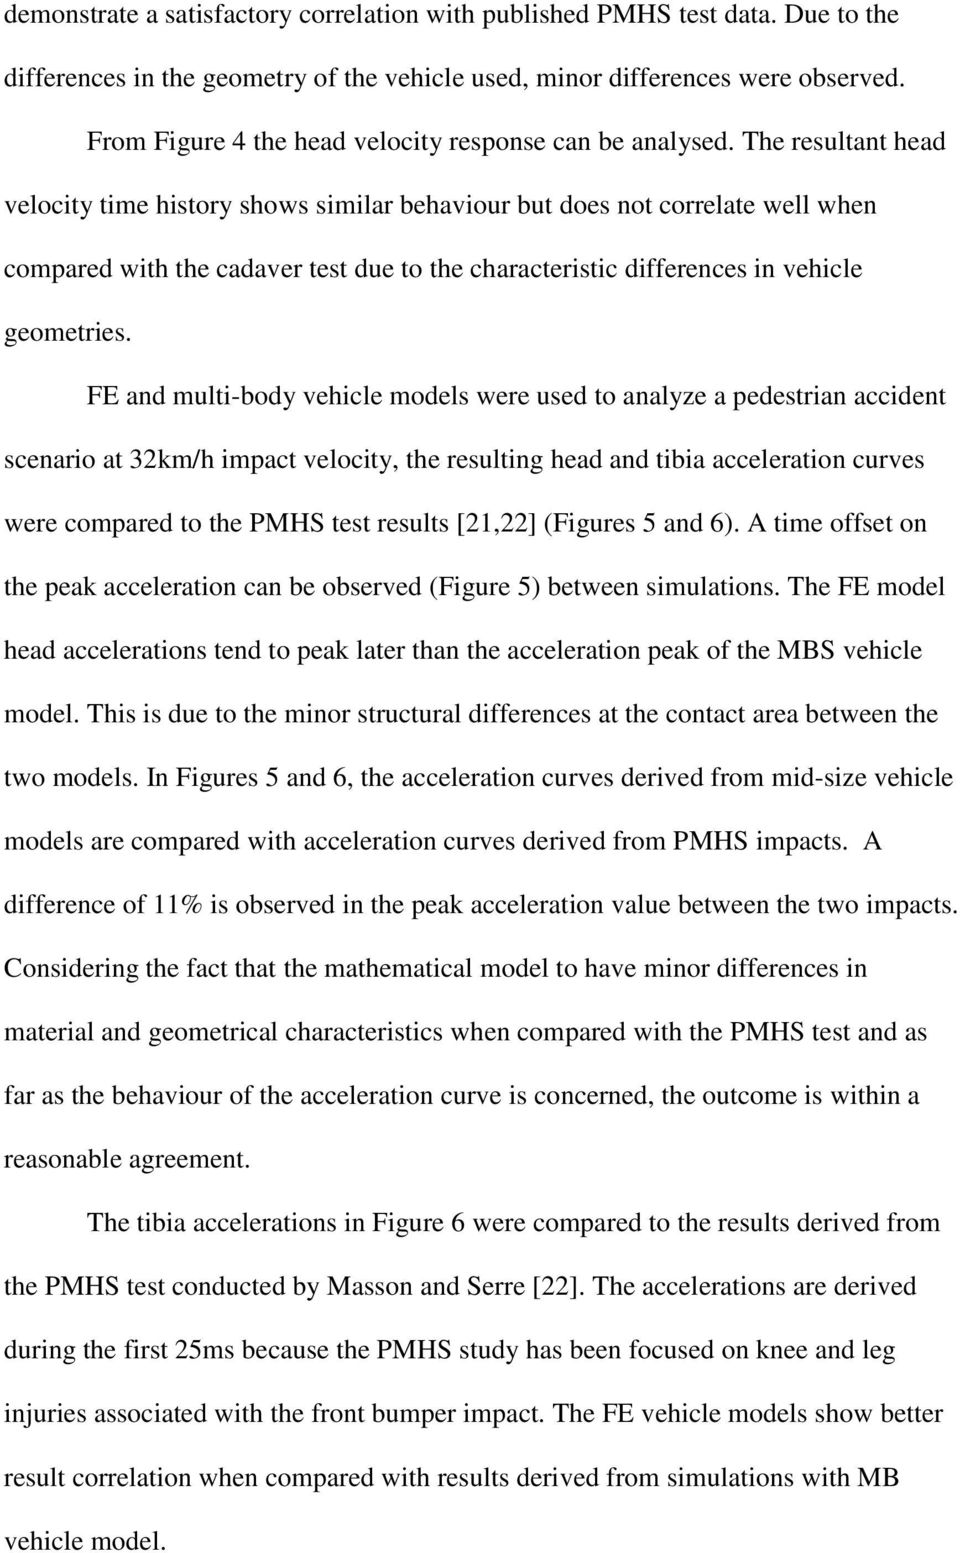 The resultant head velocity time history shows similar behaviour but does not correlate well when compared with the cadaver test due to the characteristic differences in vehicle geometries.